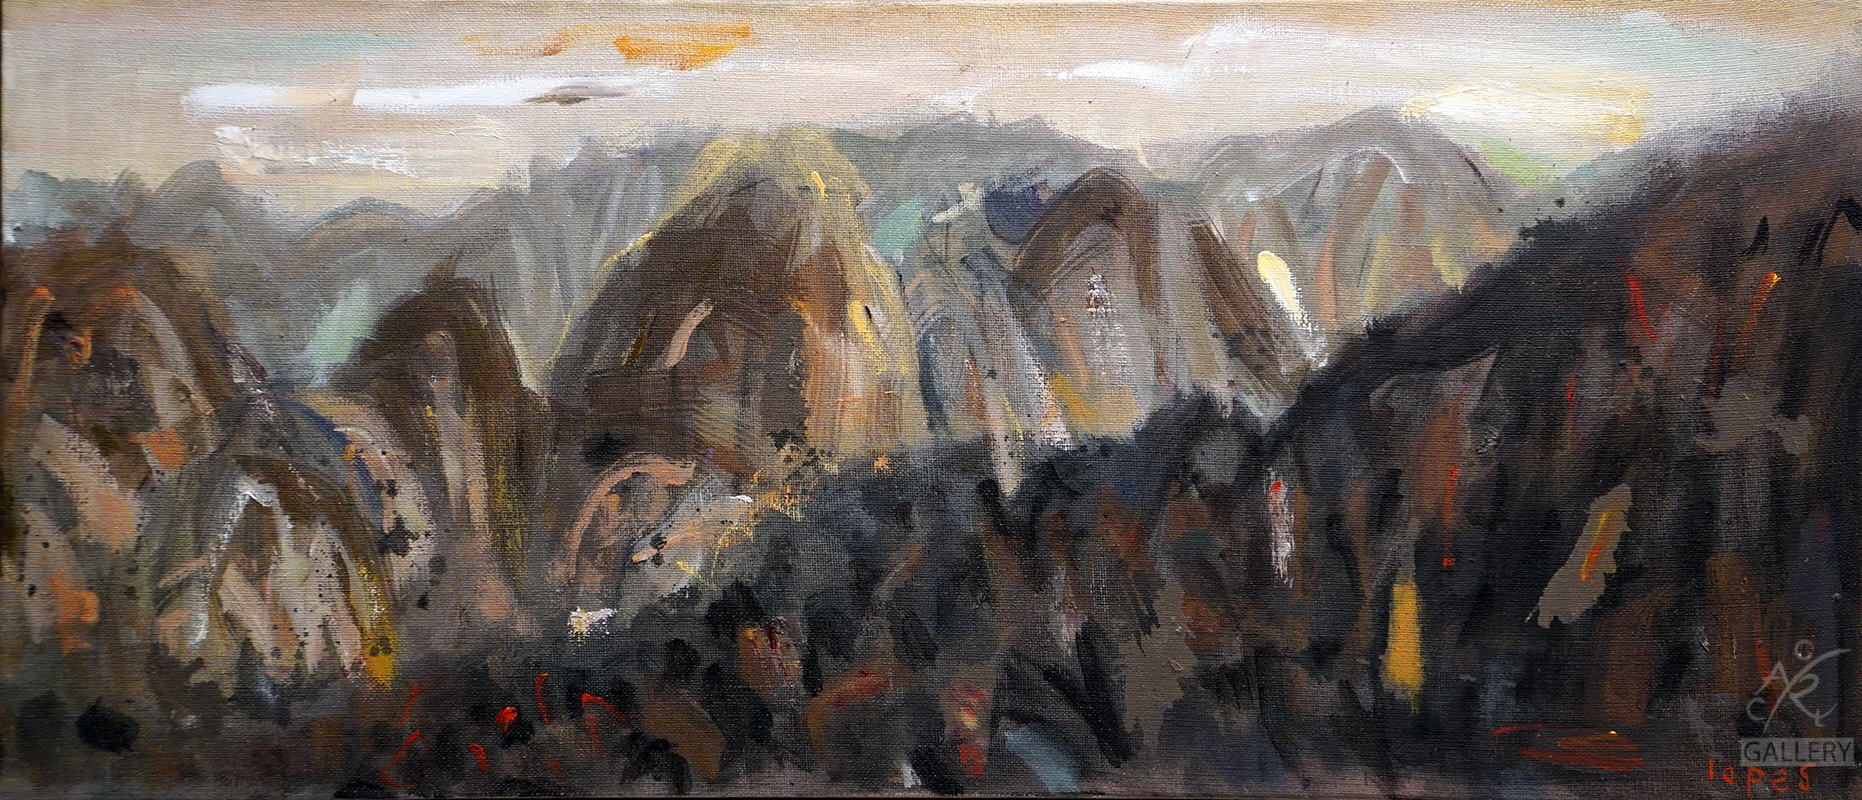 Huangshan, Mountain Top Study II